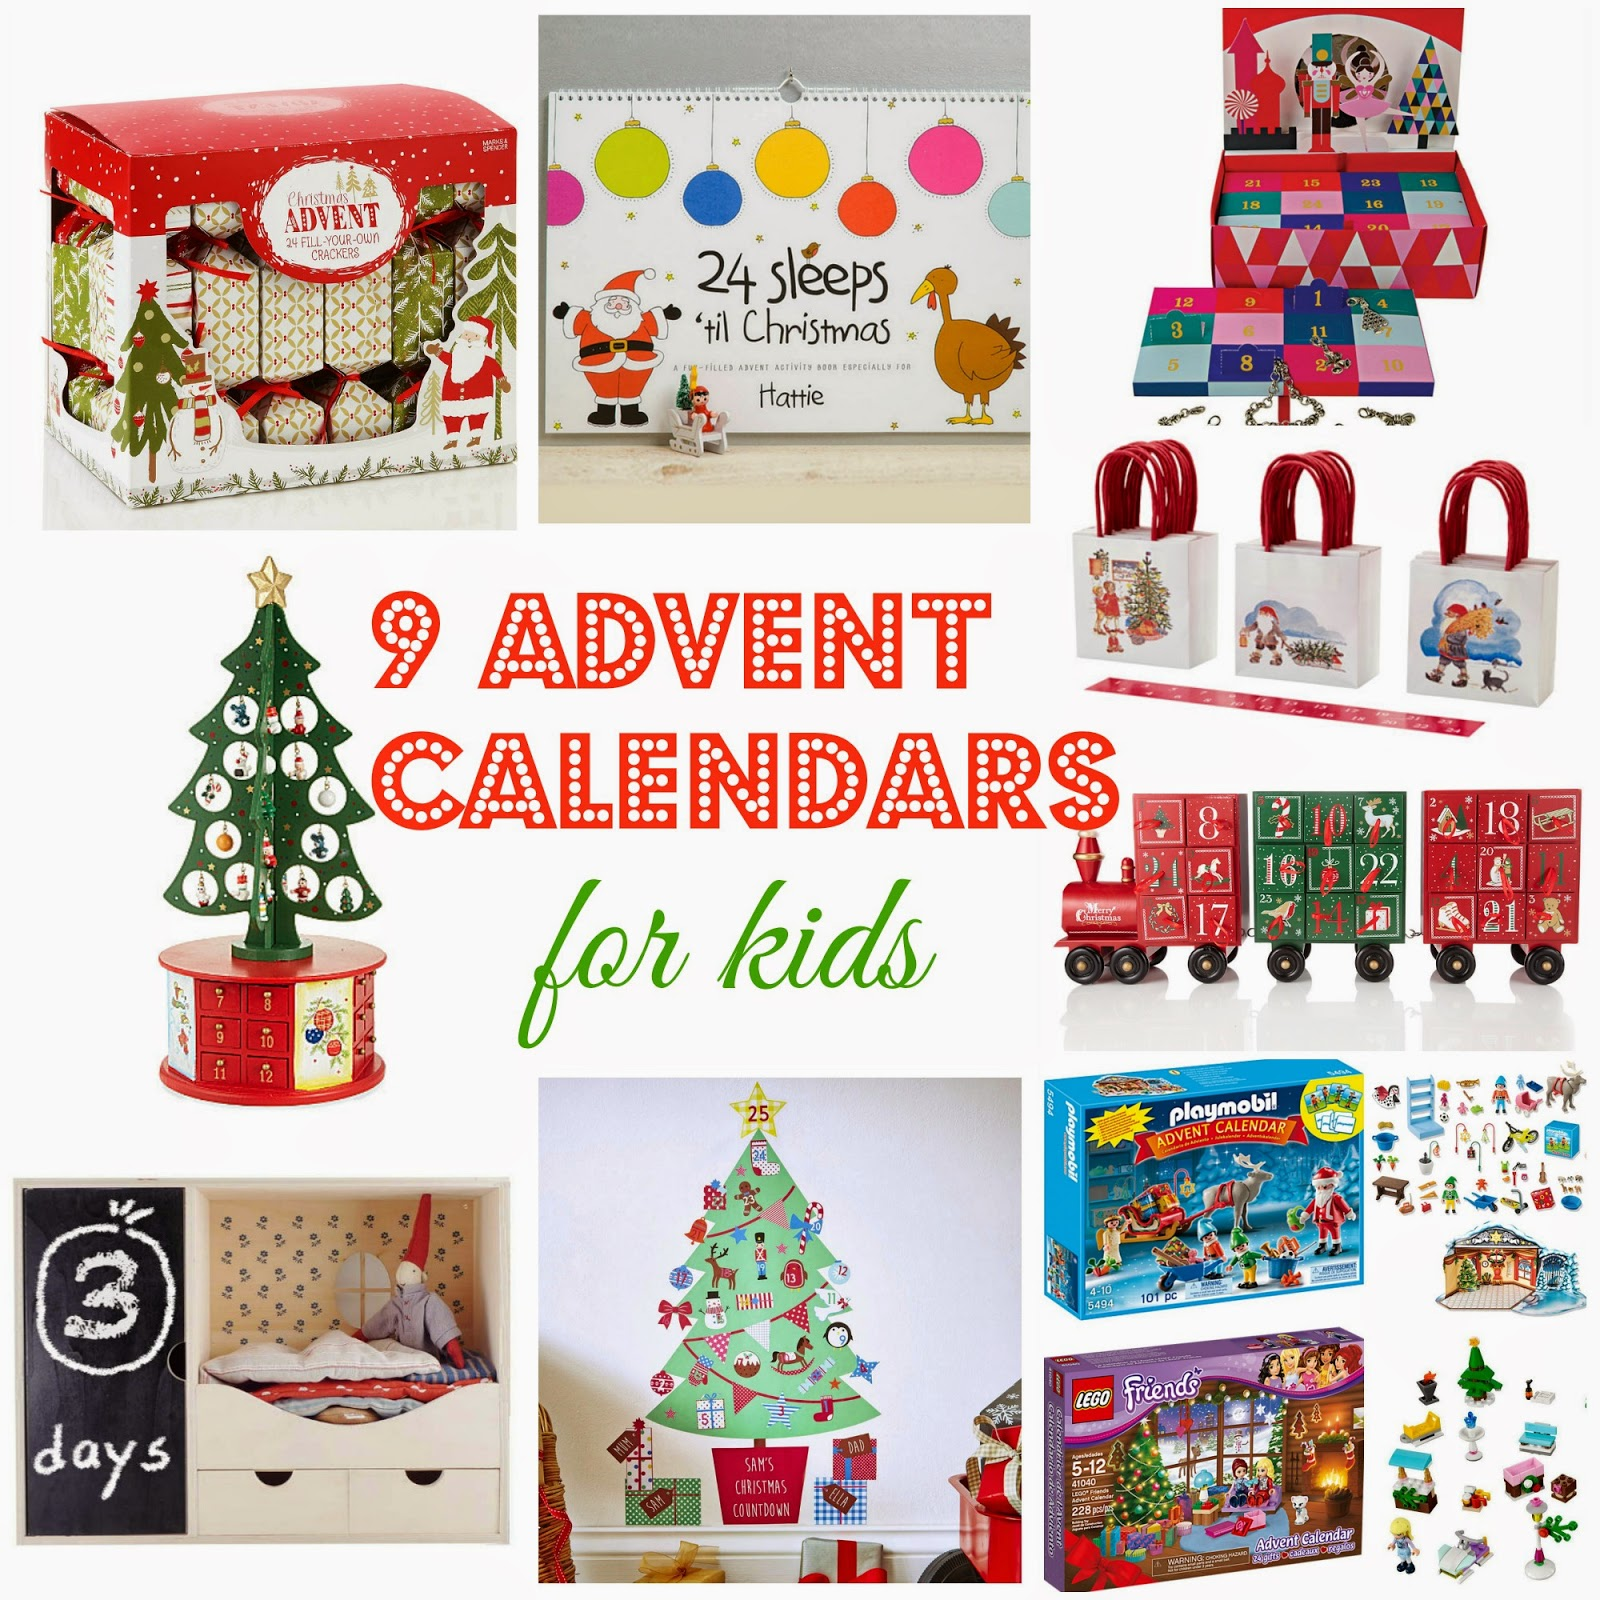 9 kids advent calendars … and not a chocolate in sight! | kids advent calendars | marks and spencer | mailed | not on the hughstreet | argos | lego |playmobil | keri keri | nutcracker | best kids advent calendars 2014 | kids christmas | christmas advent calendars | christmas for kids | mamasVIB | 9 of the best calendars for kids | christmas ideas | slefirdges | ikea | cheap advent calendars | expensive advent calendars | unusual advent calendars | kids advent | christmas calendars | mamsVIb | shopping ideas | bonita turner fashion editor |